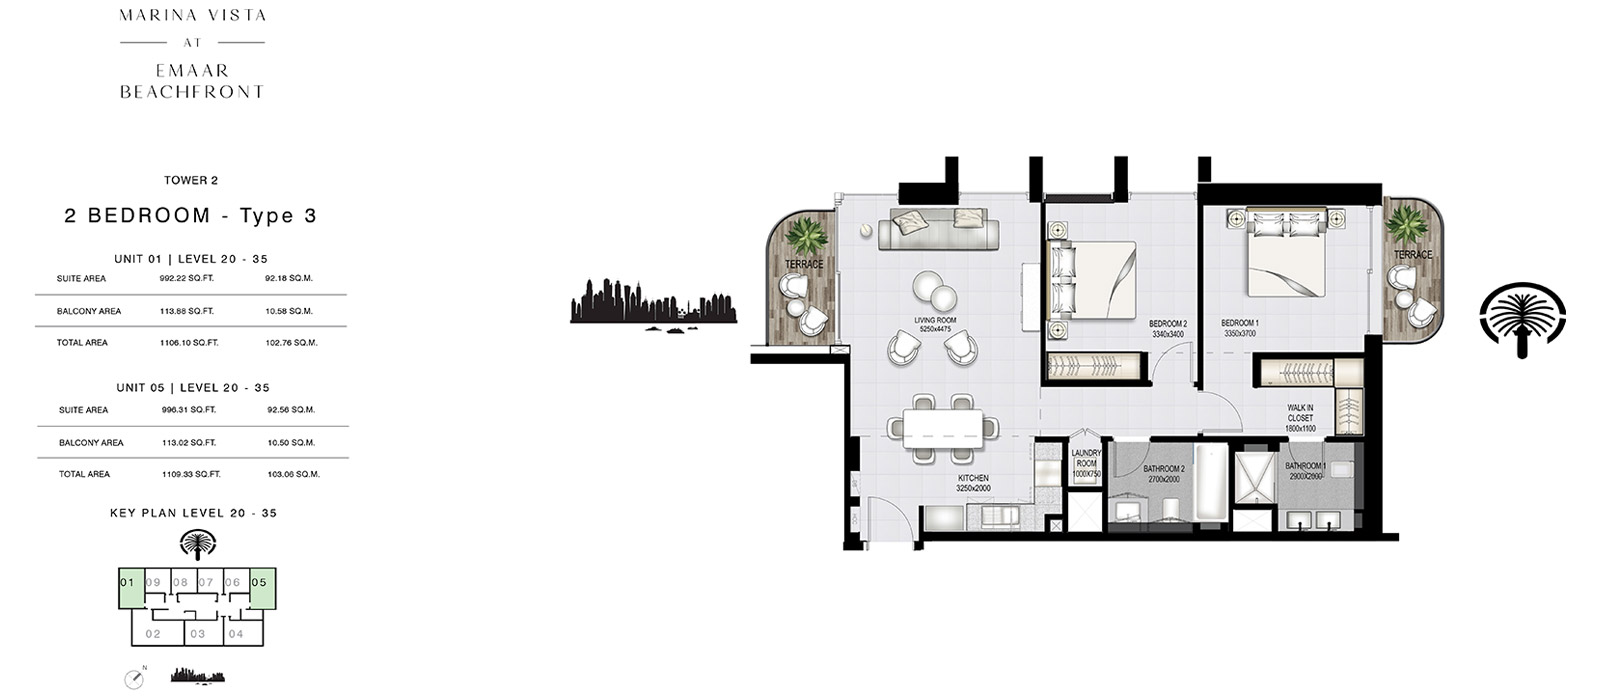 2 Bedroom Tower 2, Type 3, Size 1109.33 sq.ft.